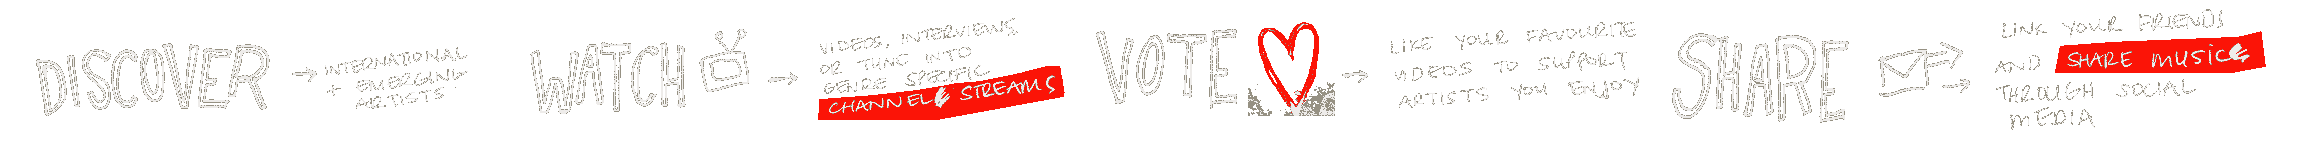 Discover Music Videos Watch Vote and Share New Music Videos